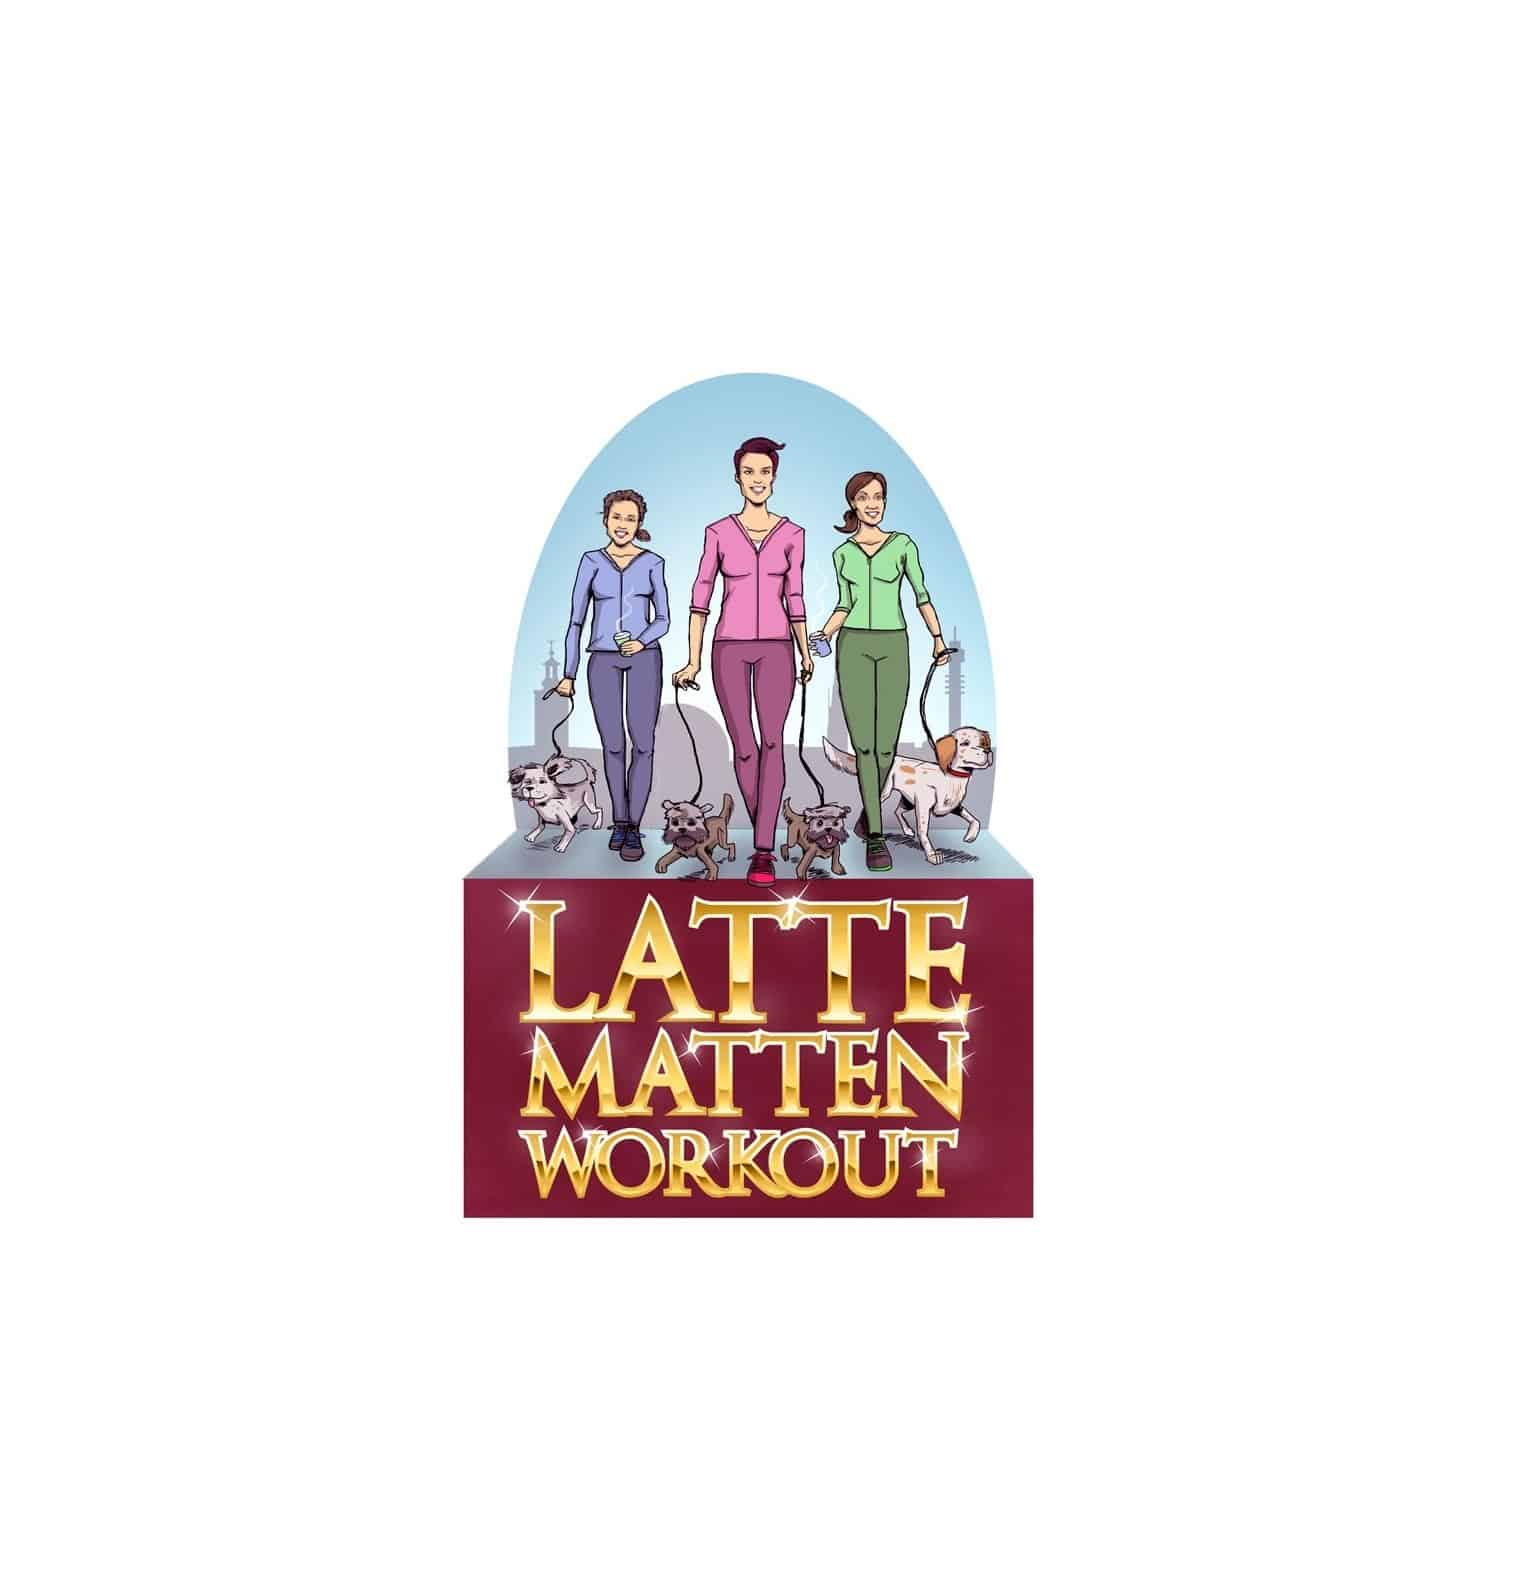 LATTEMATTEN WORKOUT